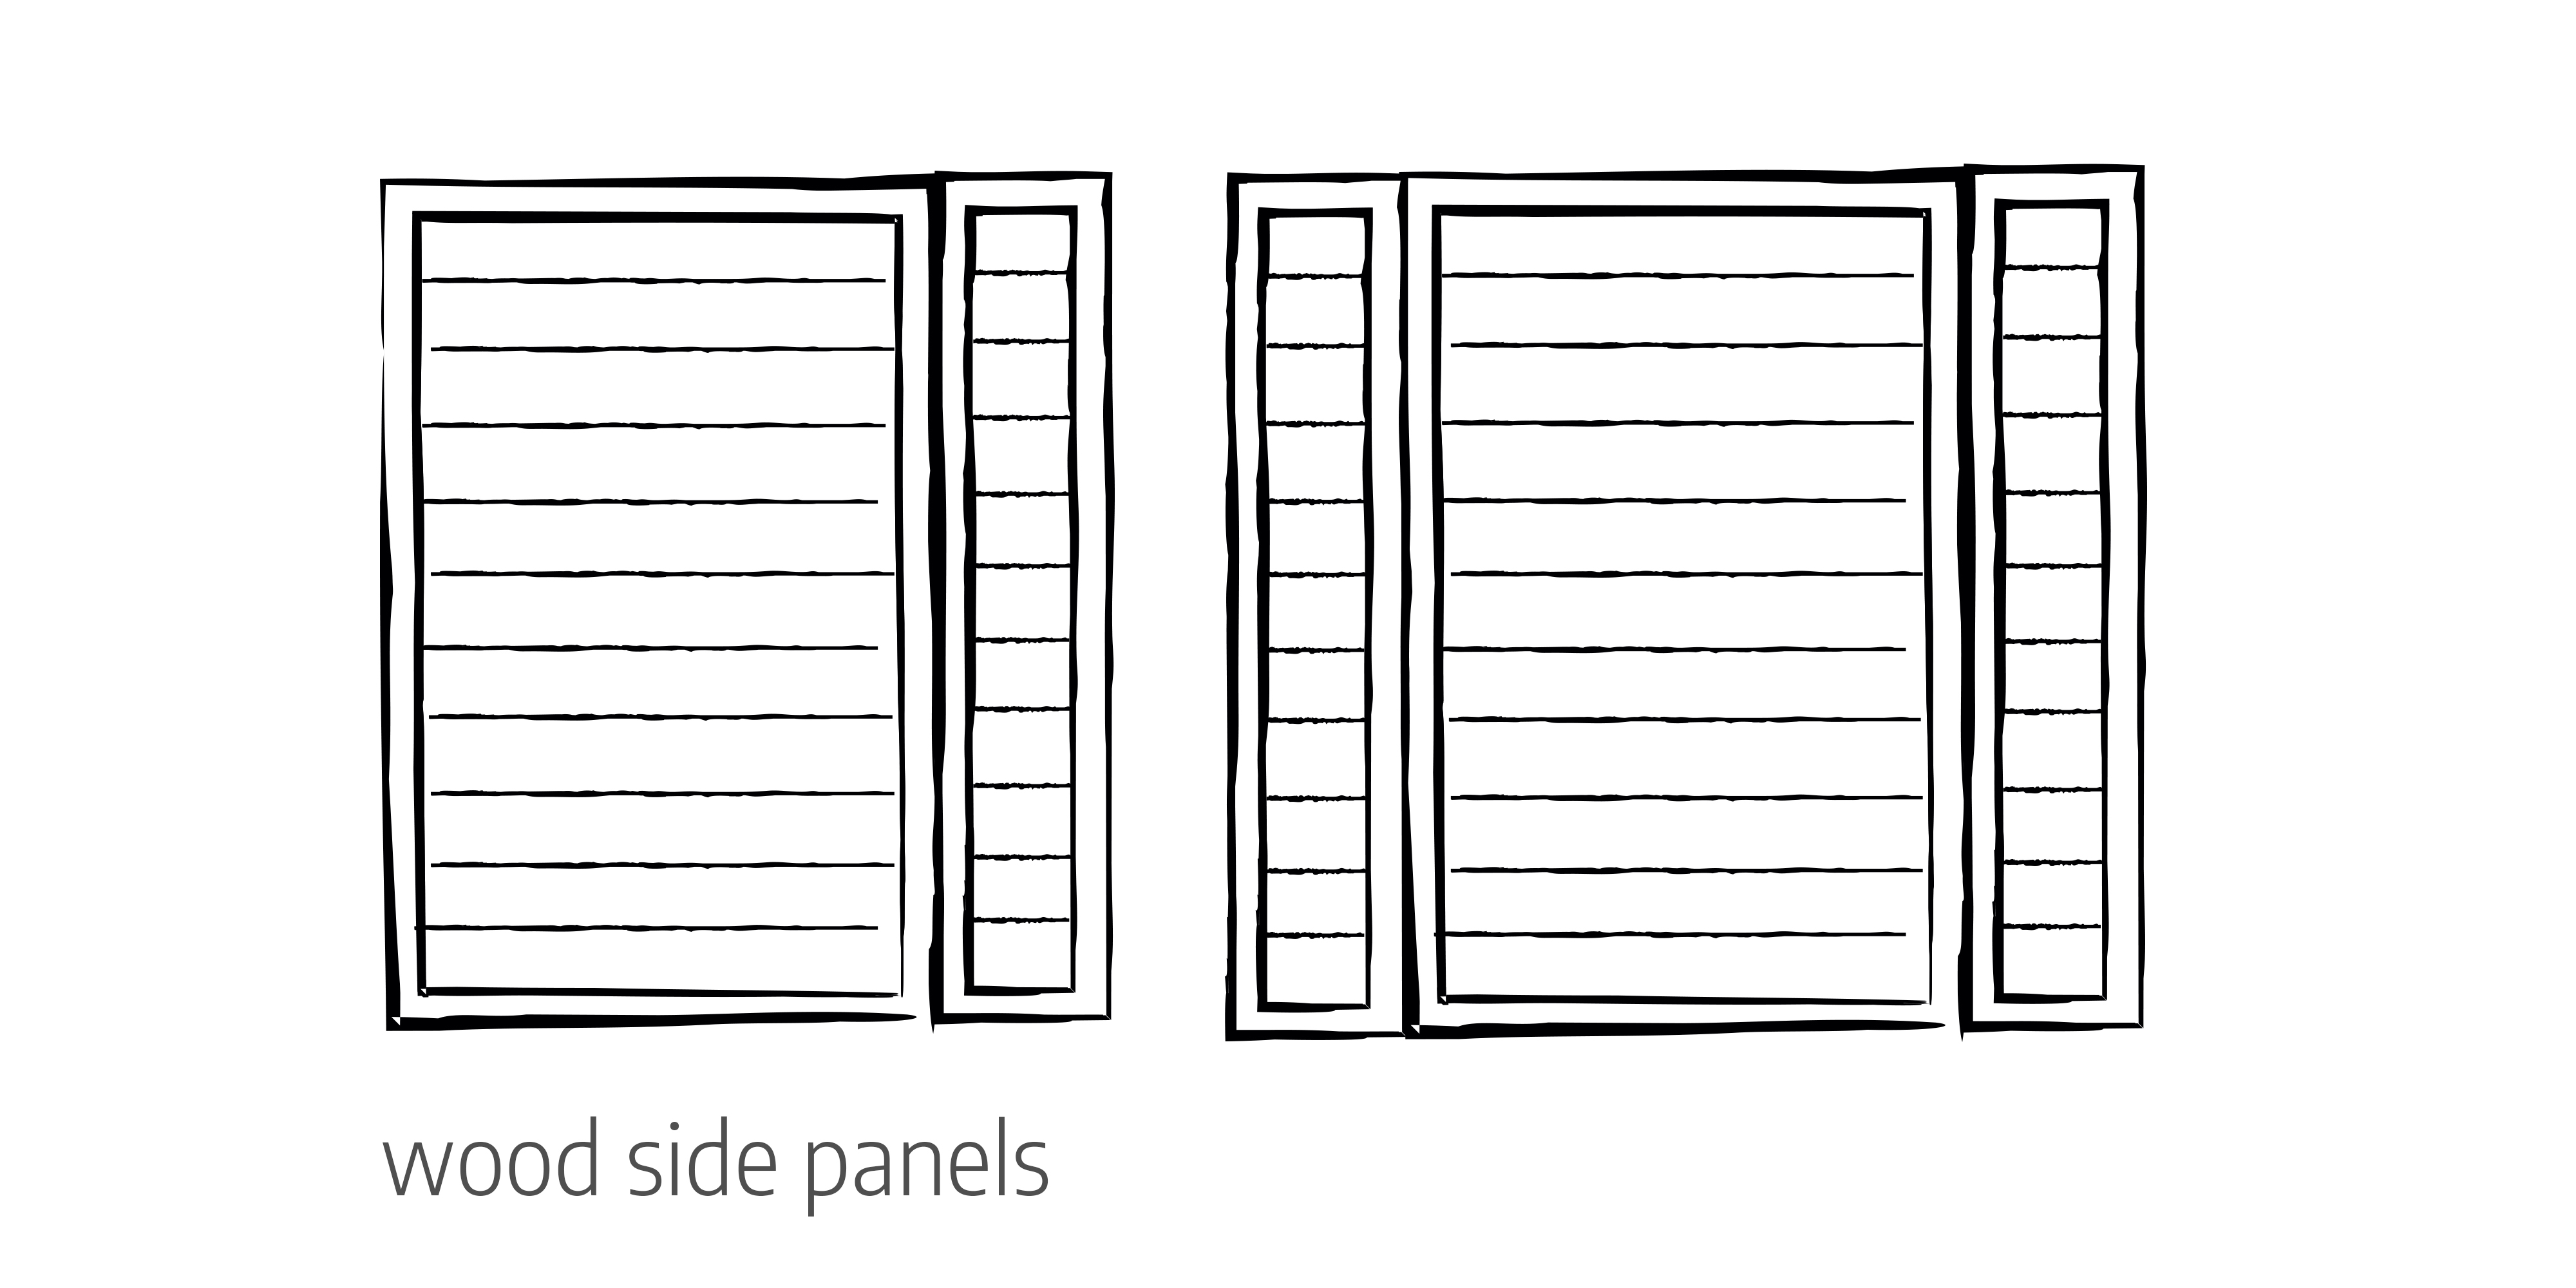 Wood side panels door configurations Urban Front